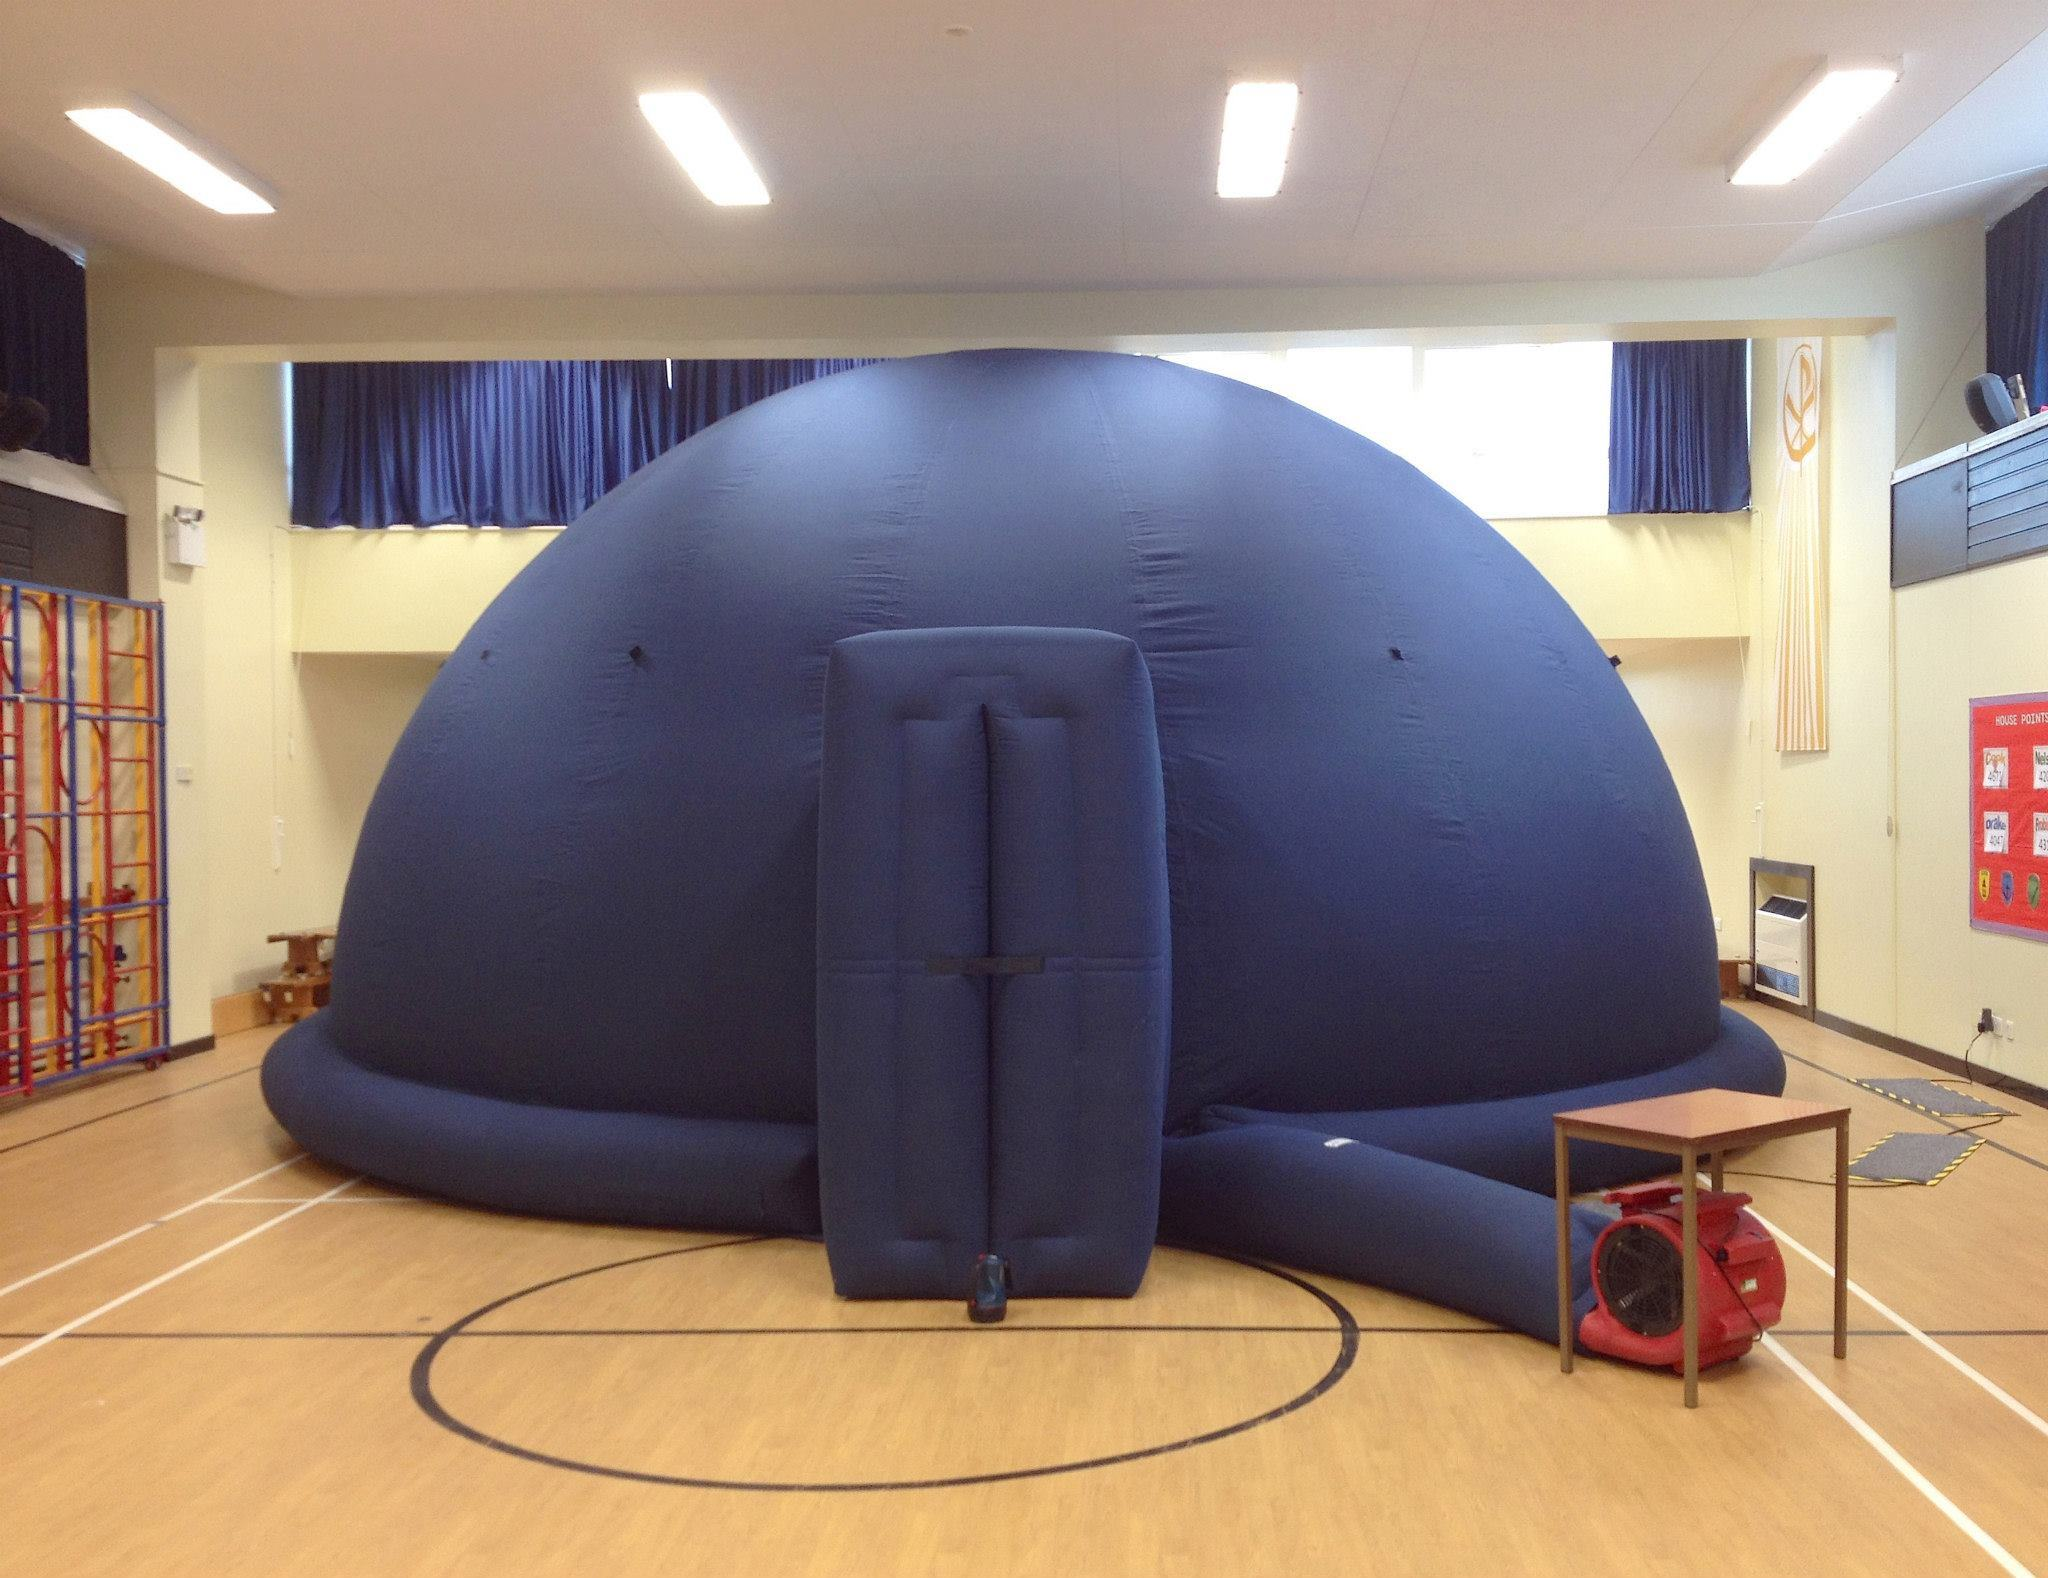 Inflatable Classroom Projection Planetarium for Sale